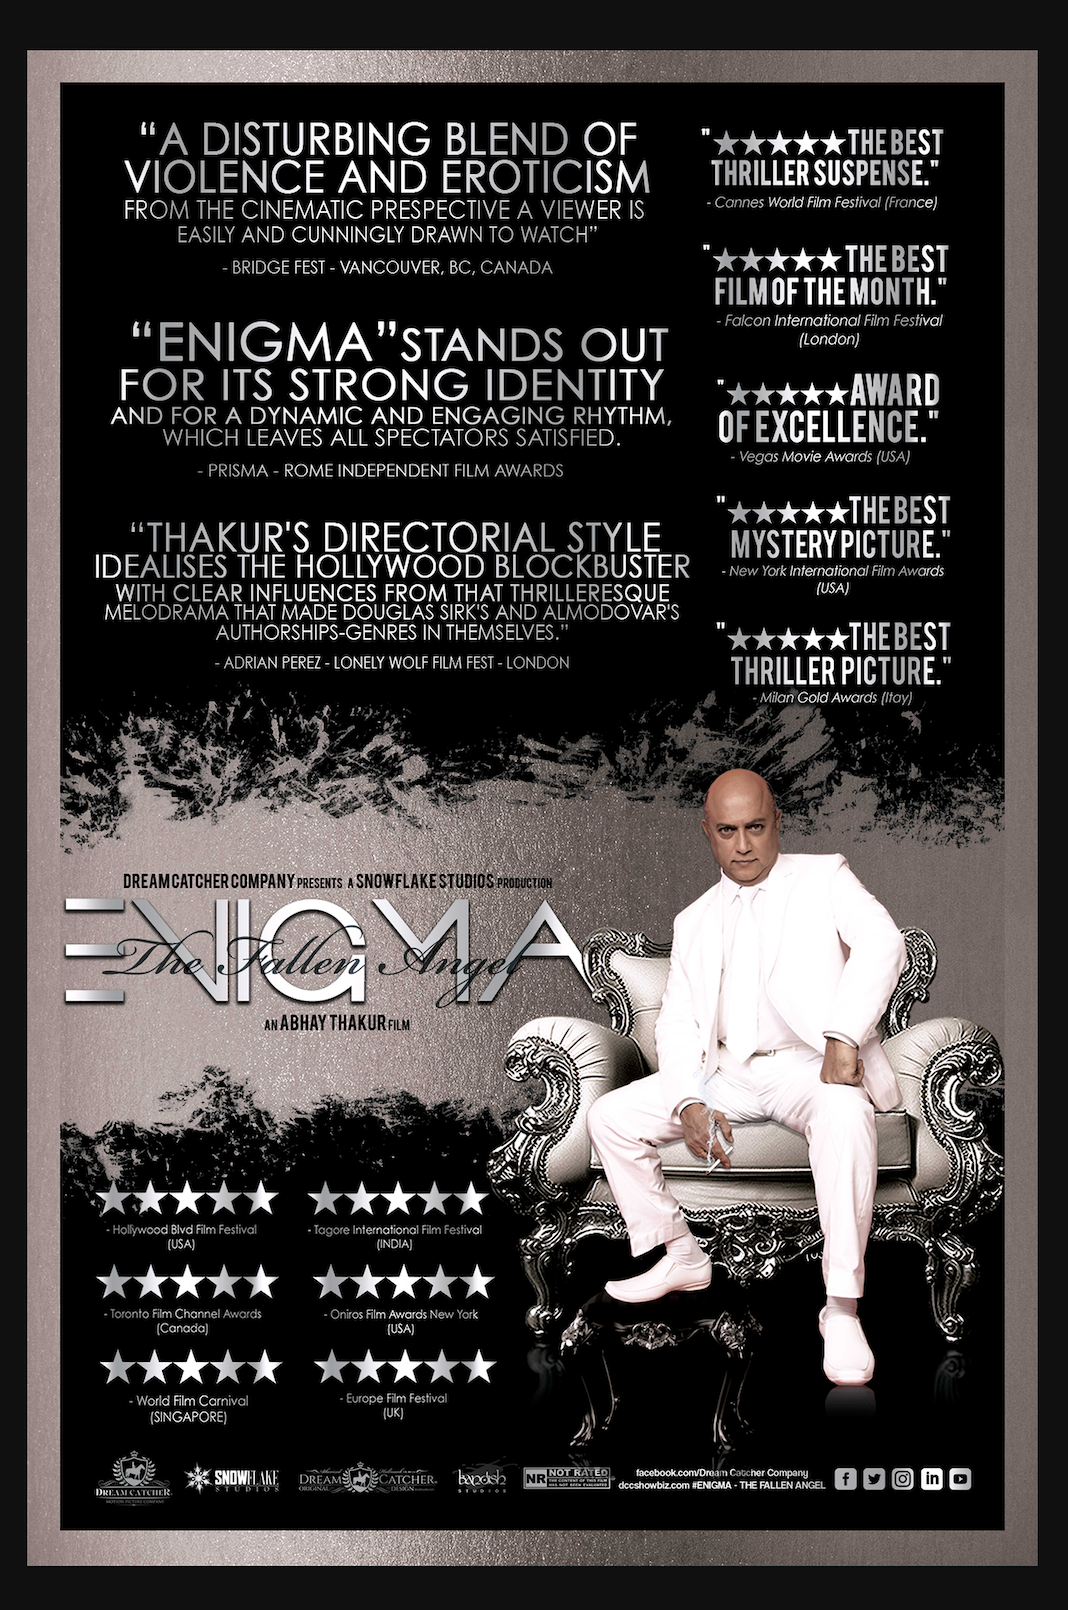 Enigma Wins Over 100 Awards Worldwide, Taking the Film World by Storm